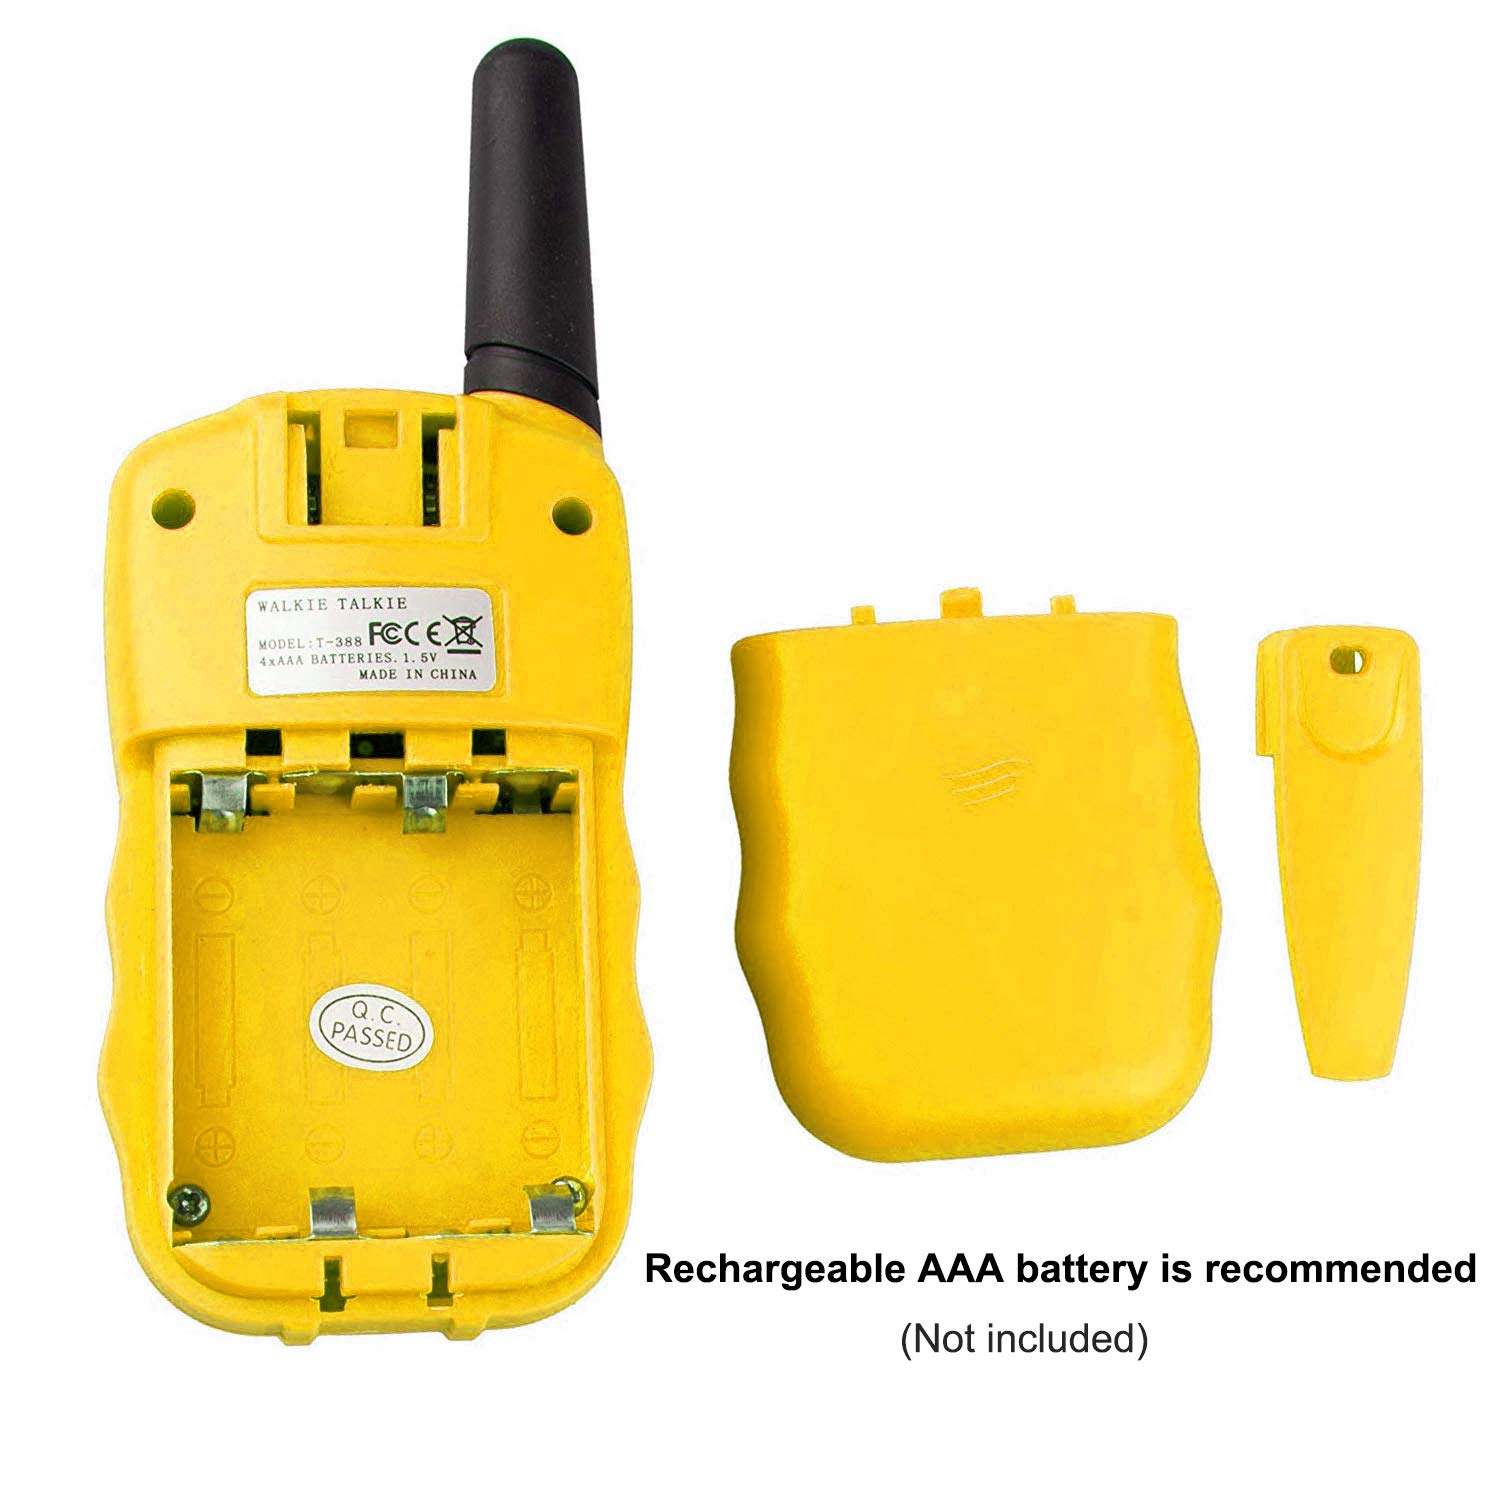 Qianghong T3 Kids Walkie Talkies 3-12 Year Old Children's Outdoor Toys Mini Two Way Radios UHF 462-467 MHz Frequency 22 Channels -1 Pair Yellow by Qianghong (Image #5)